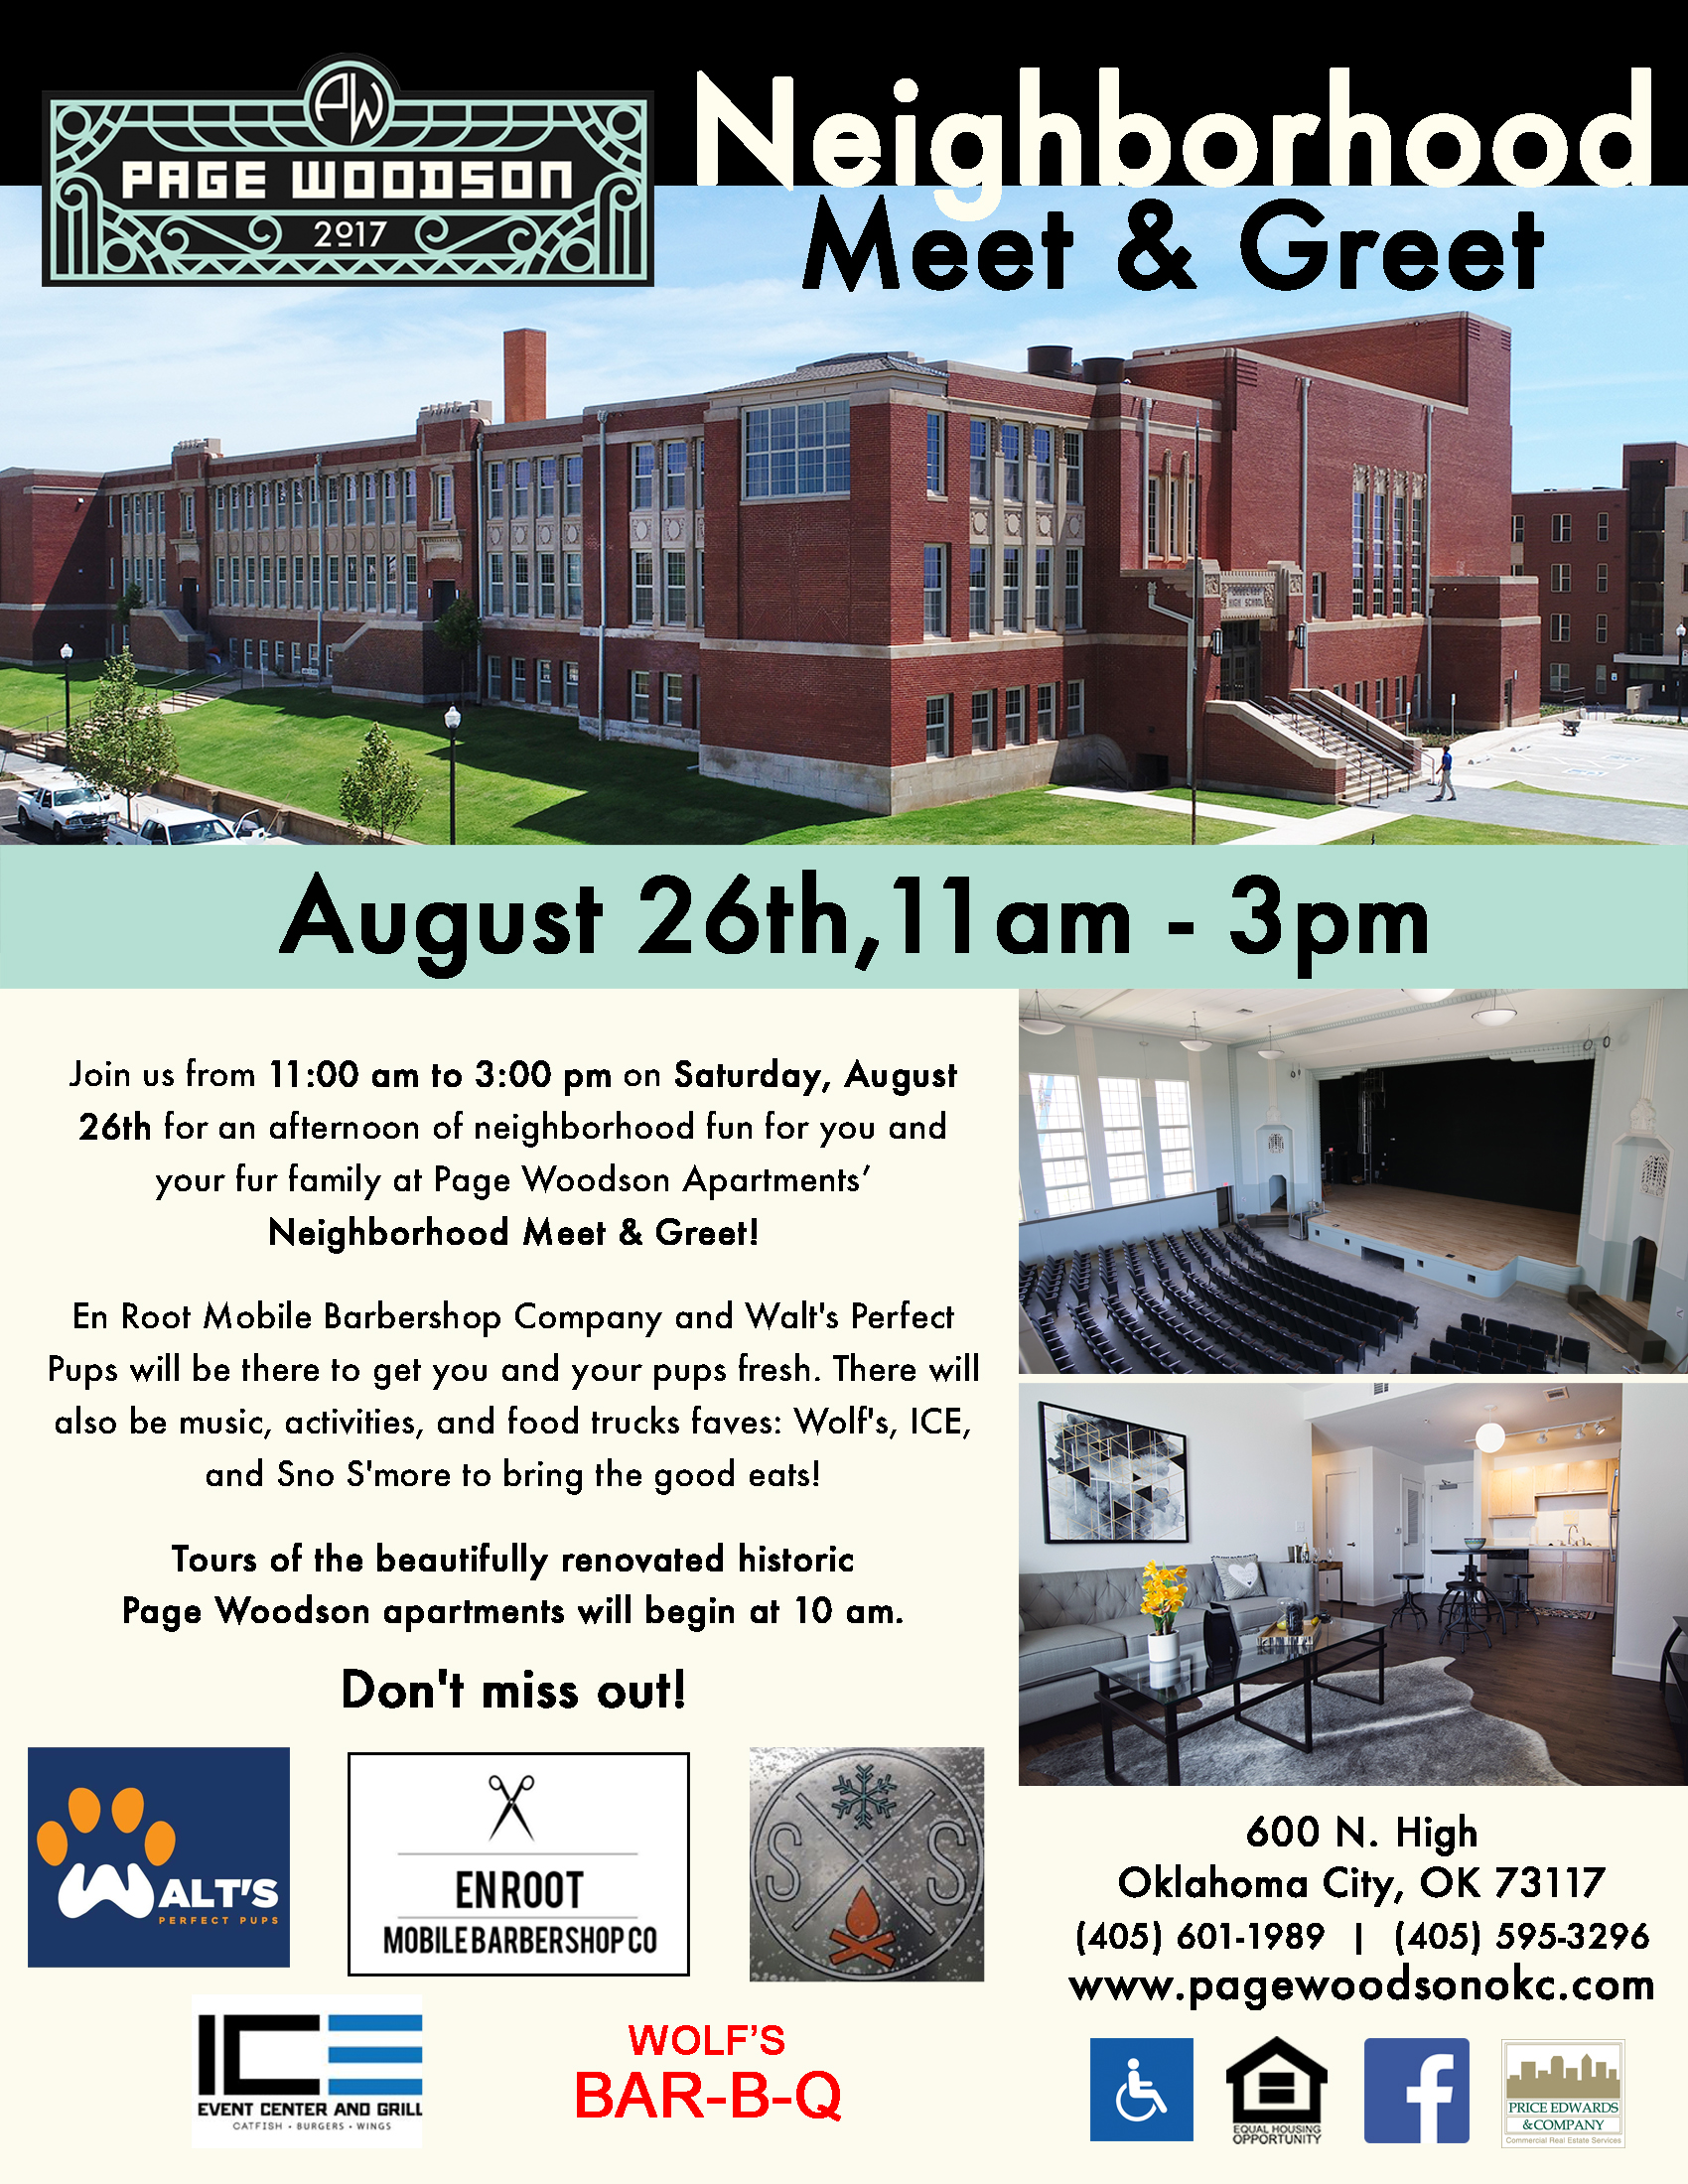 Neighborhood Meet & Greet - August 26th, 2017 - 11 am to 3 pmJoin us from 11:00 am to 3:00 pm on Saturday, August 26th for an afternoon of neighborhood fun for you and your fur family at Page Woodson Apartments' Neighborhood Meet & Greet!Tours of the beautifully renovated historic Page Woodson apartments will begin at 10 am.